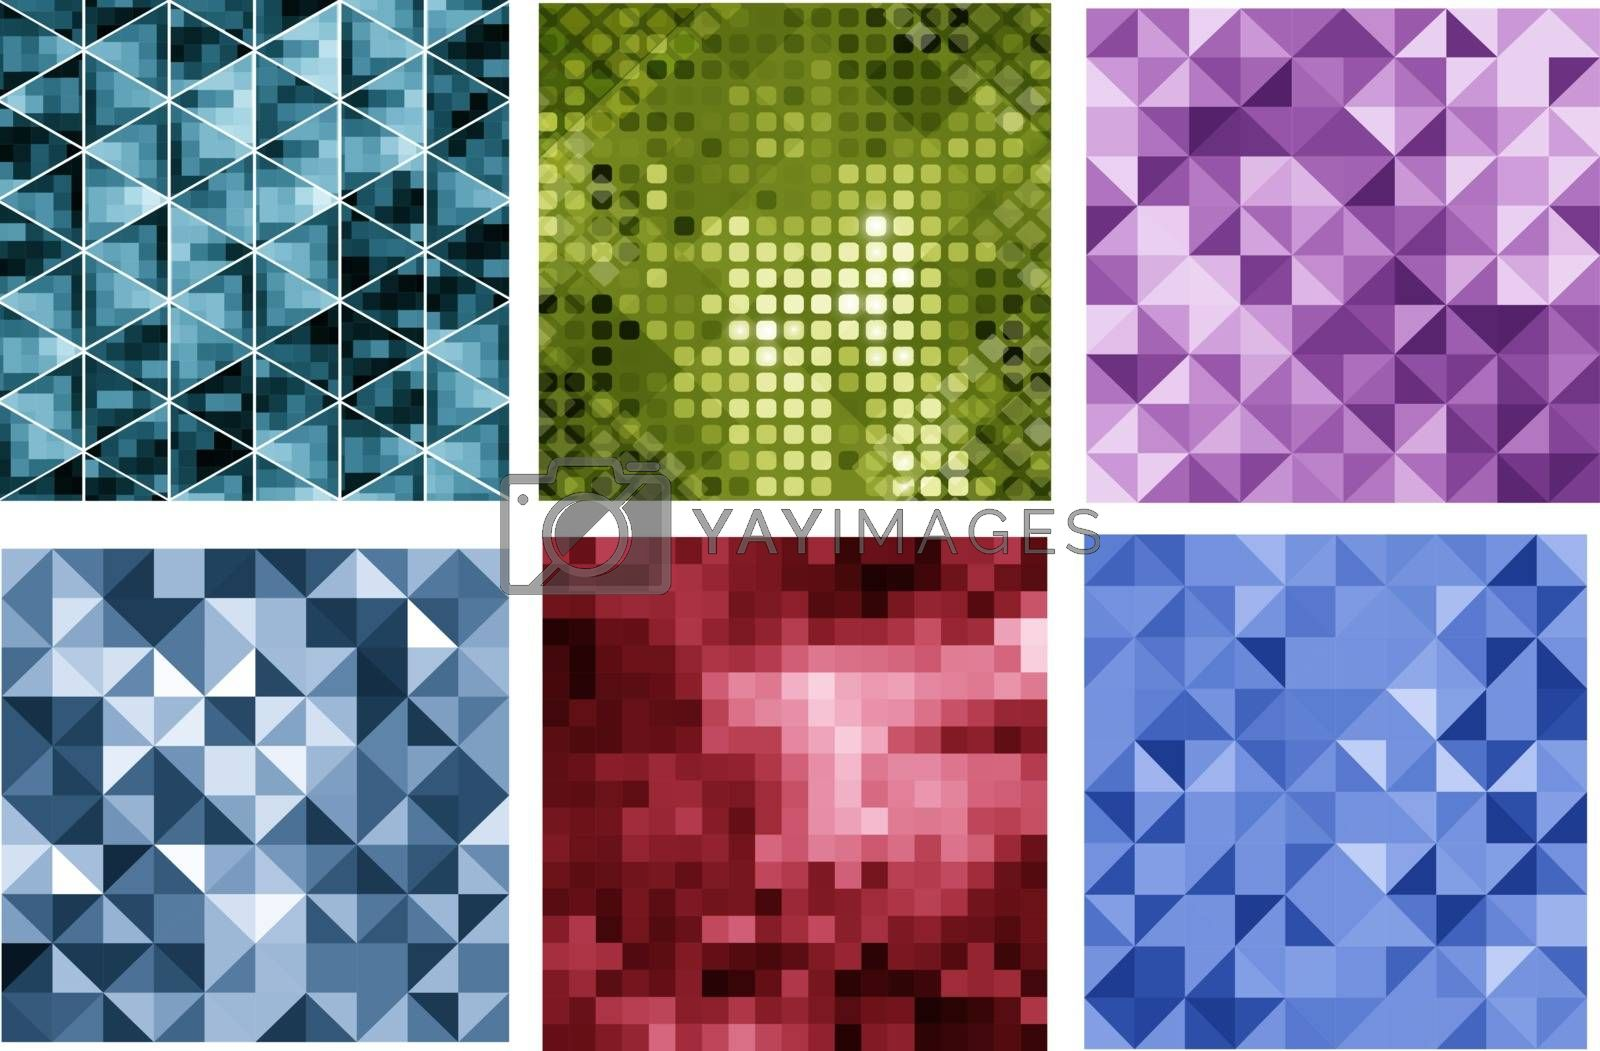 Abstract triangle background for presentations, creativity, design brochures and websites